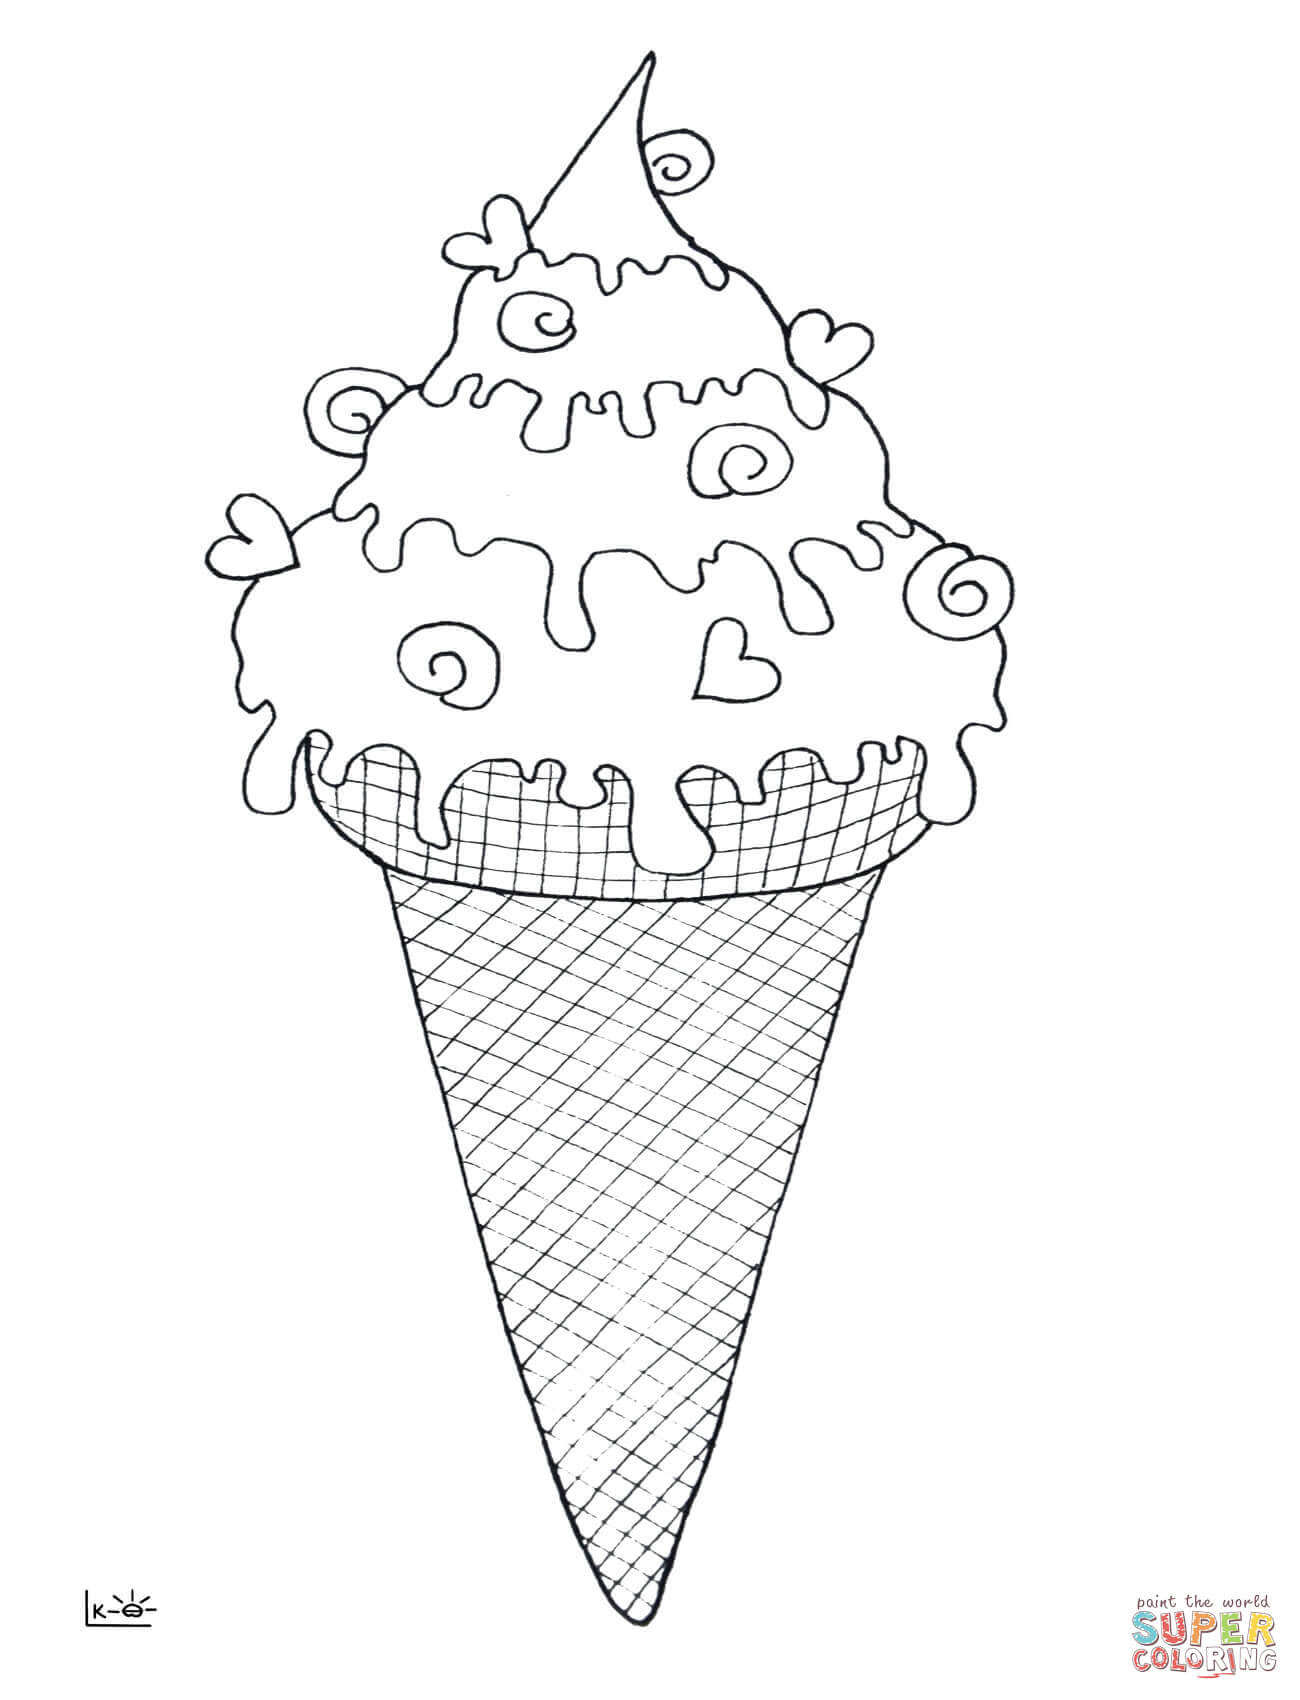 Ice Cream Cone coloring page  Free Printable Coloring Pages